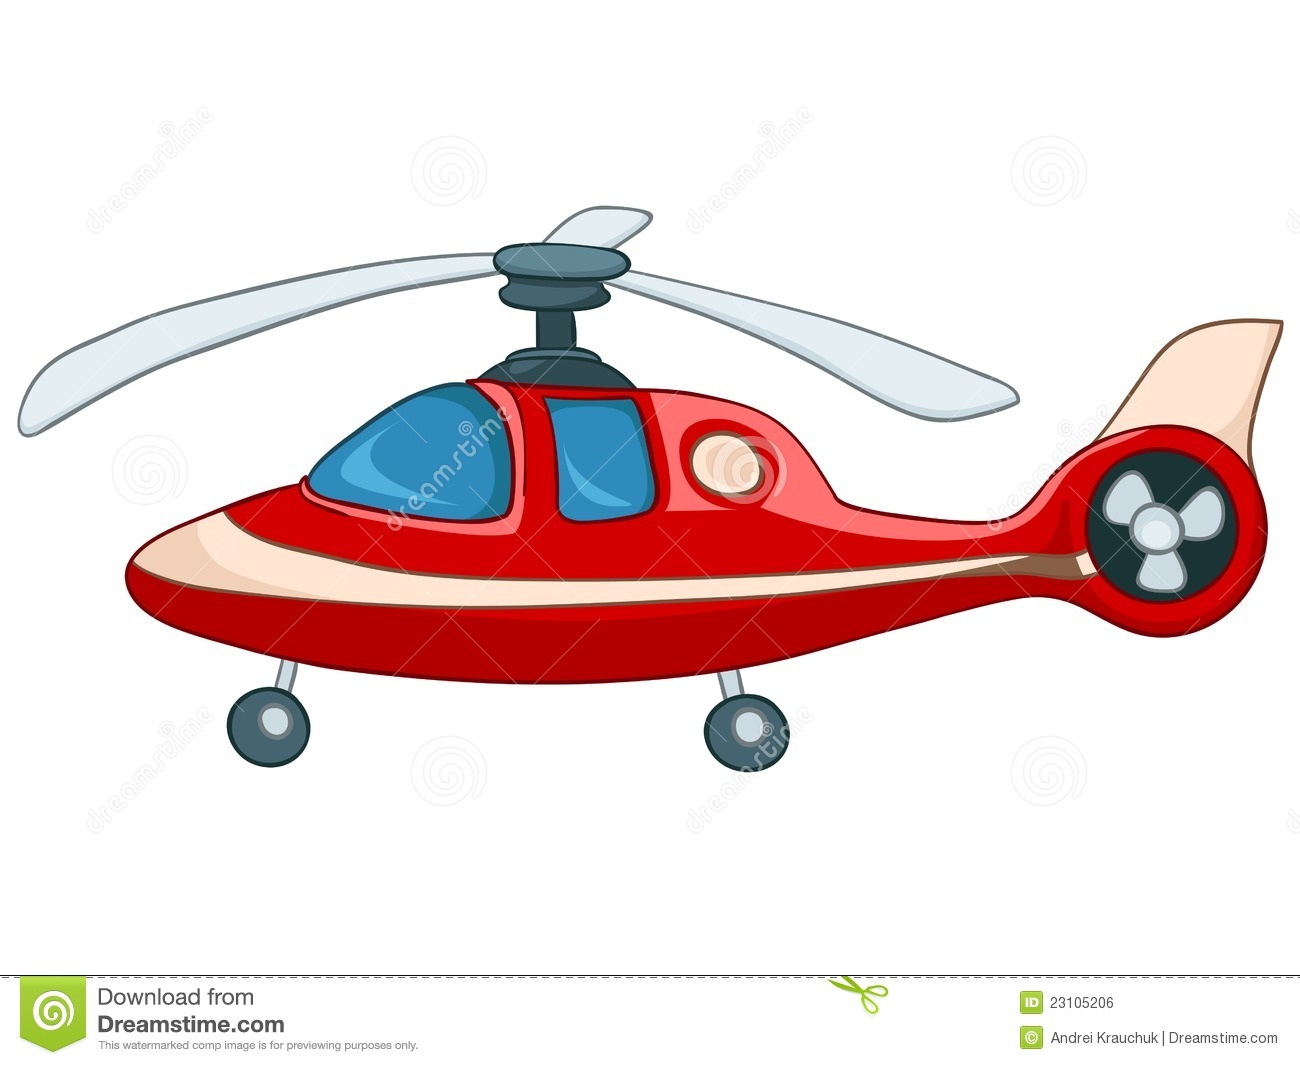 helicopter blade with Royalty Free Stock Image Cartoon Helicopter Image23105206 on How Does The Pratt Whitney Canada Pt6 Differ From Other Turboprop Engines additionally Pg1 additionally Ak47 besides Mil Mi 26 06 furthermore Why Is An Airplane Propeller So Different From A Boat Propeller In Shape.